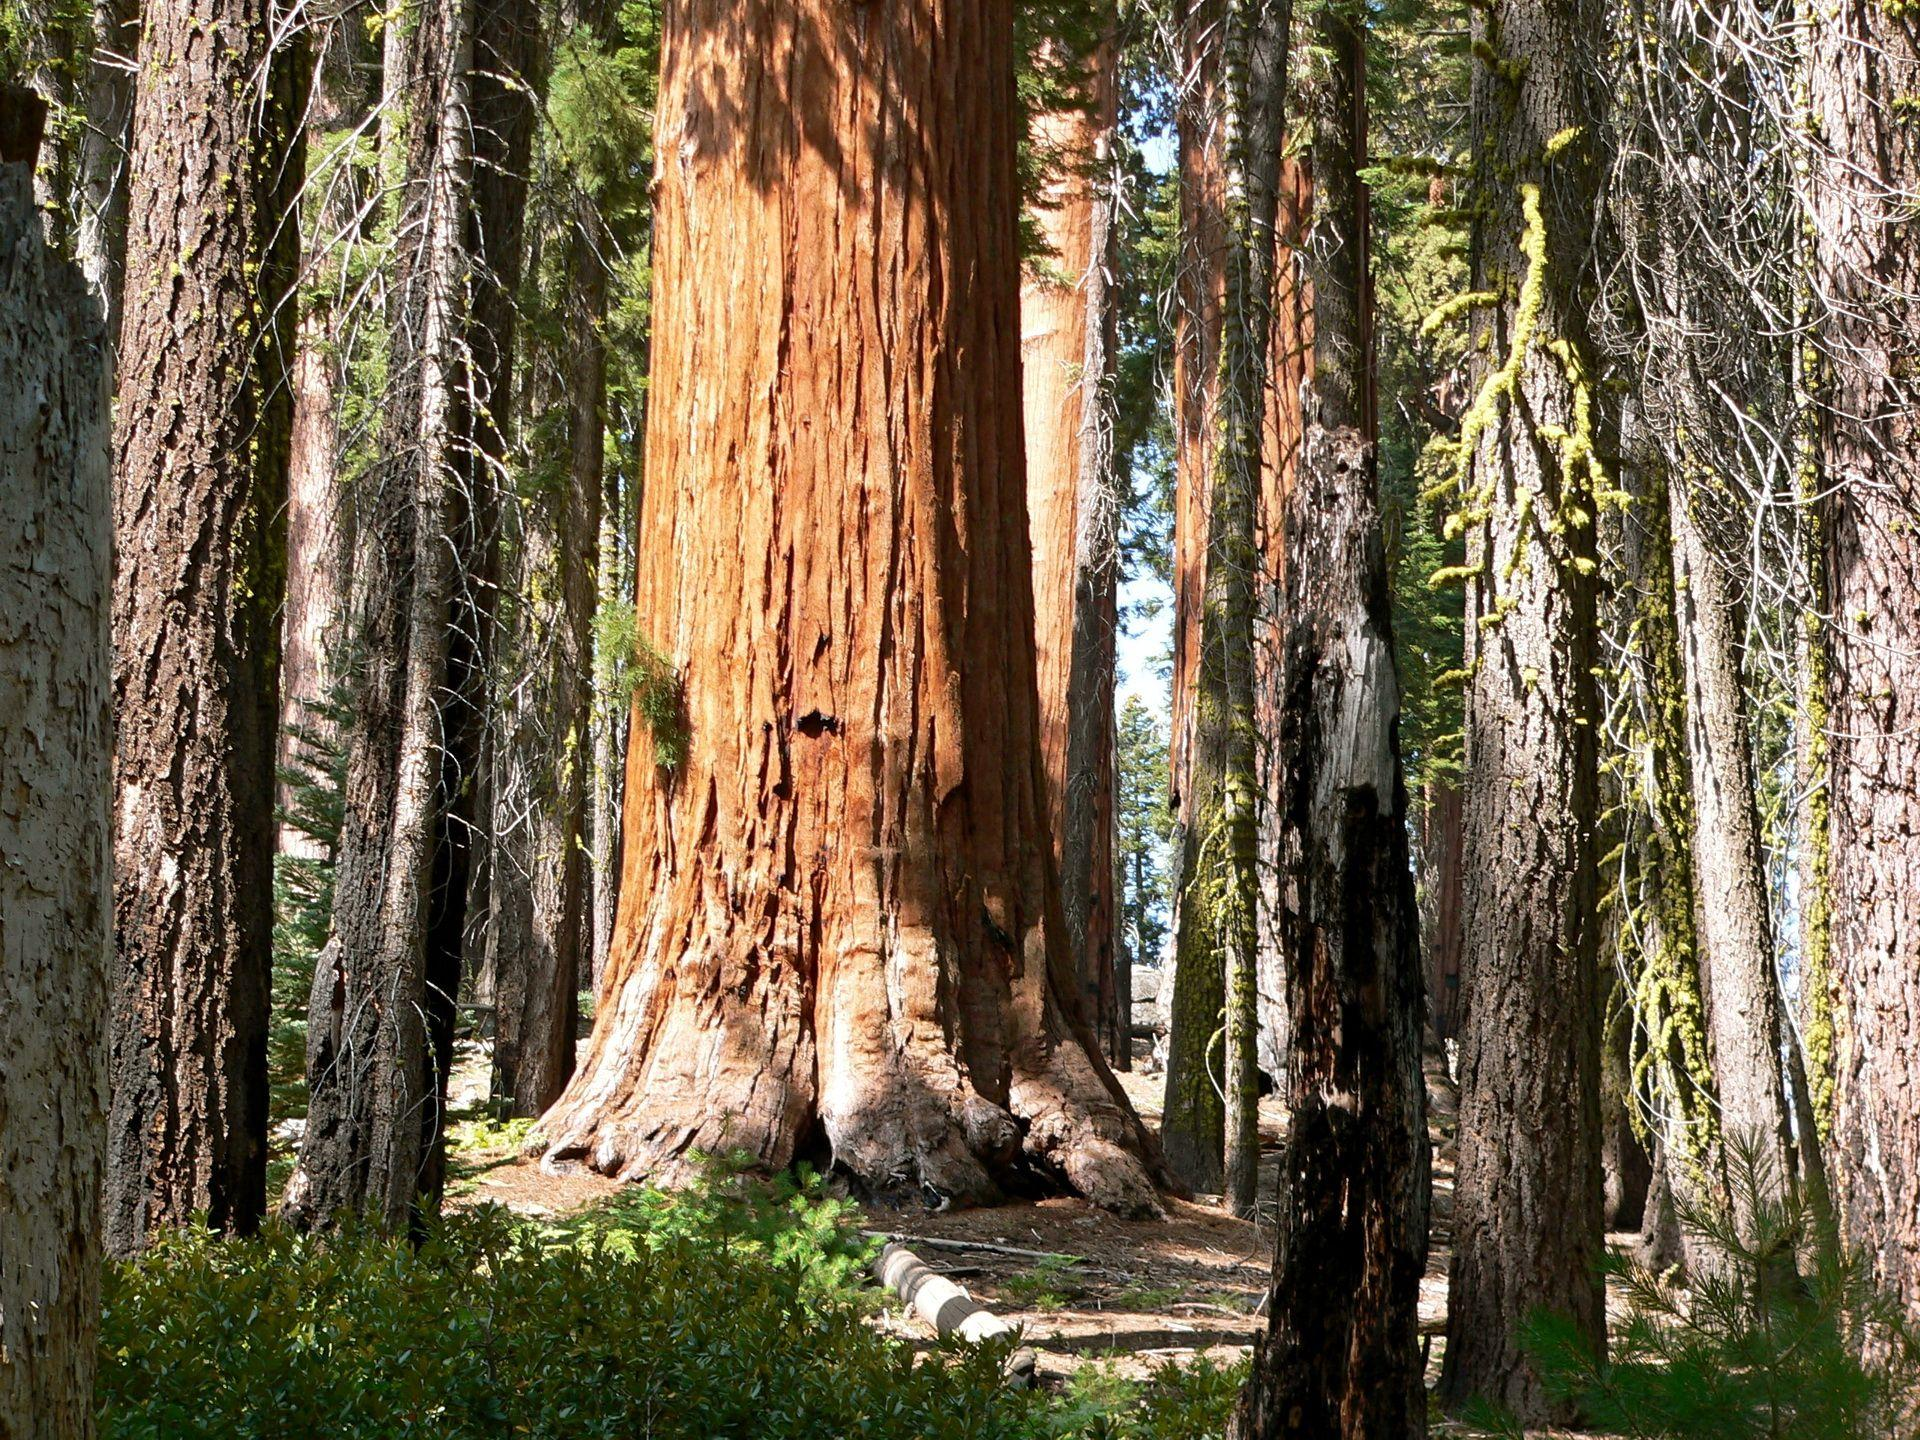 Sequoia national park California Nature Forests 1920x1440